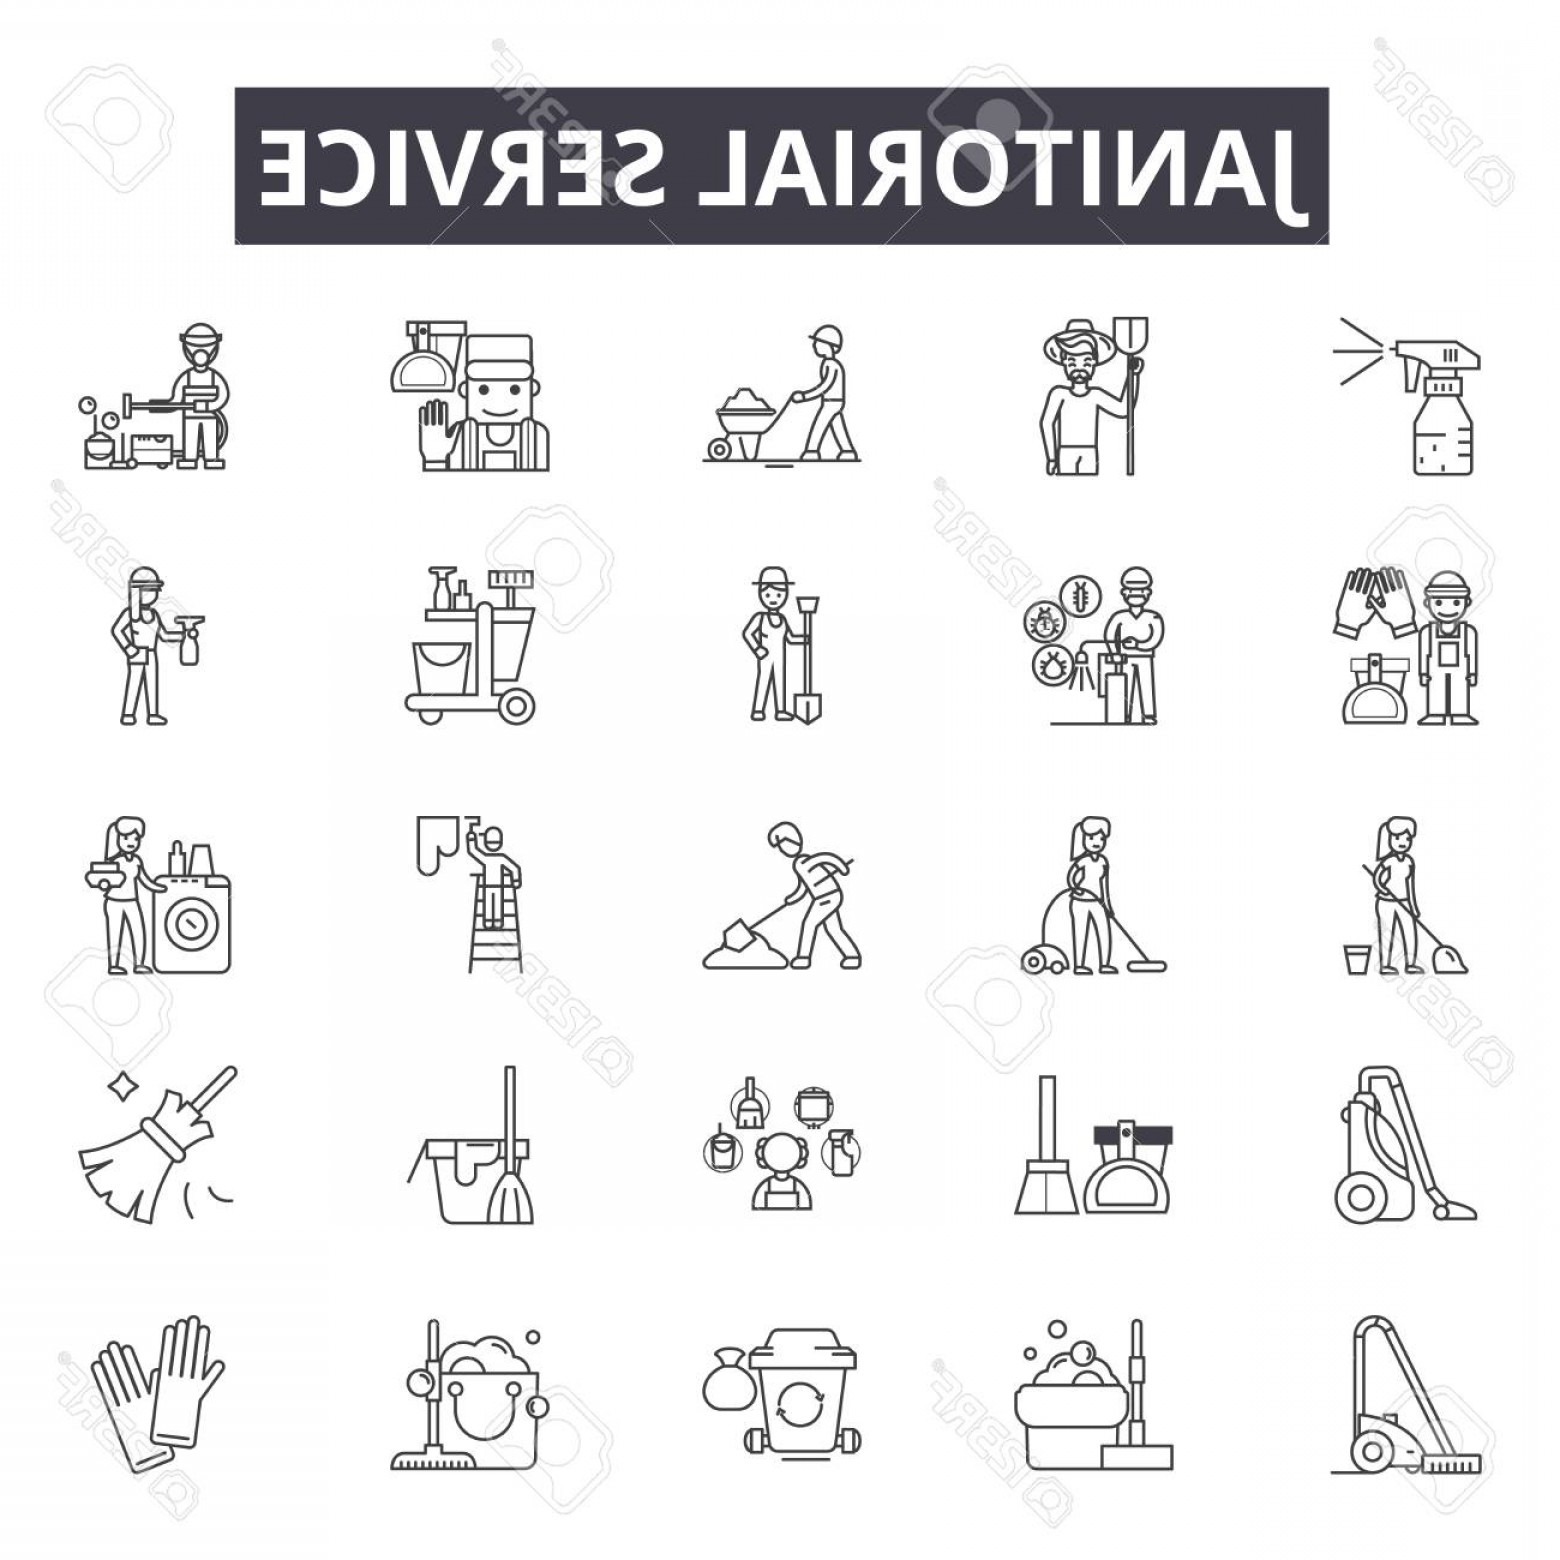 Janitorial Vector: Photostock Vector Janitorial Service Line Icons For Web And Mobile Editable Stroke Signs Janitorial Service Outline Co